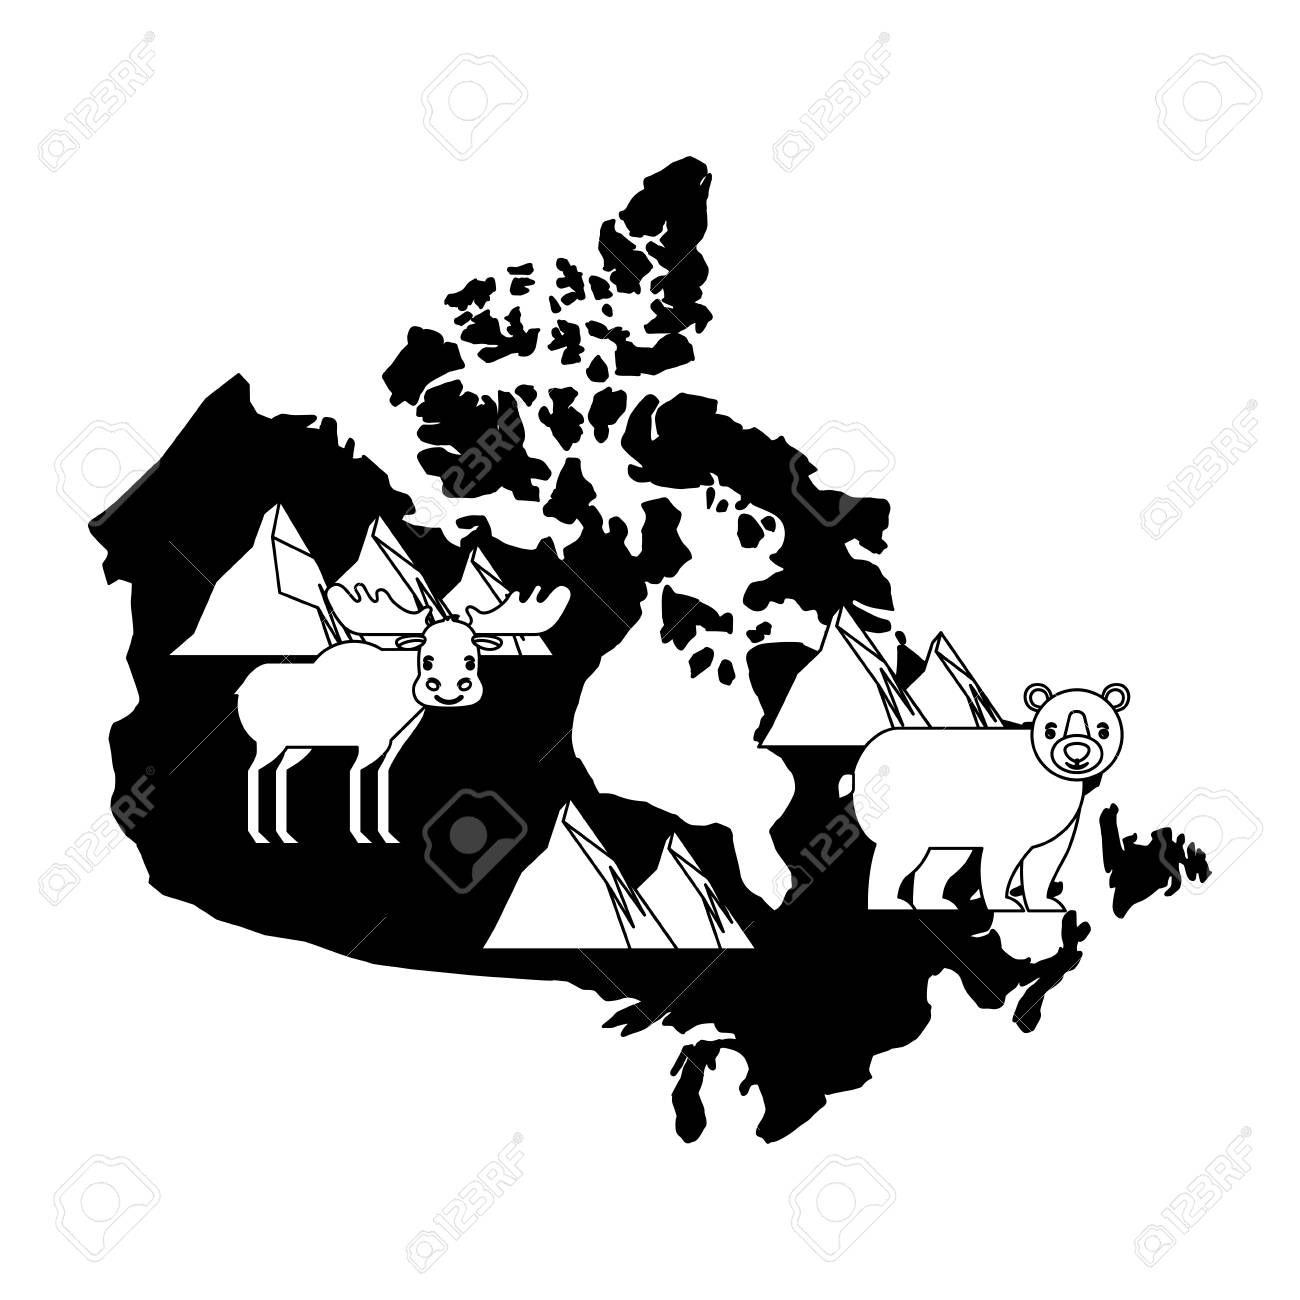 Map Of Canada Silhouette.Canada Map Silhouette With Reindeer And Bear Grizzly Vector Illustration